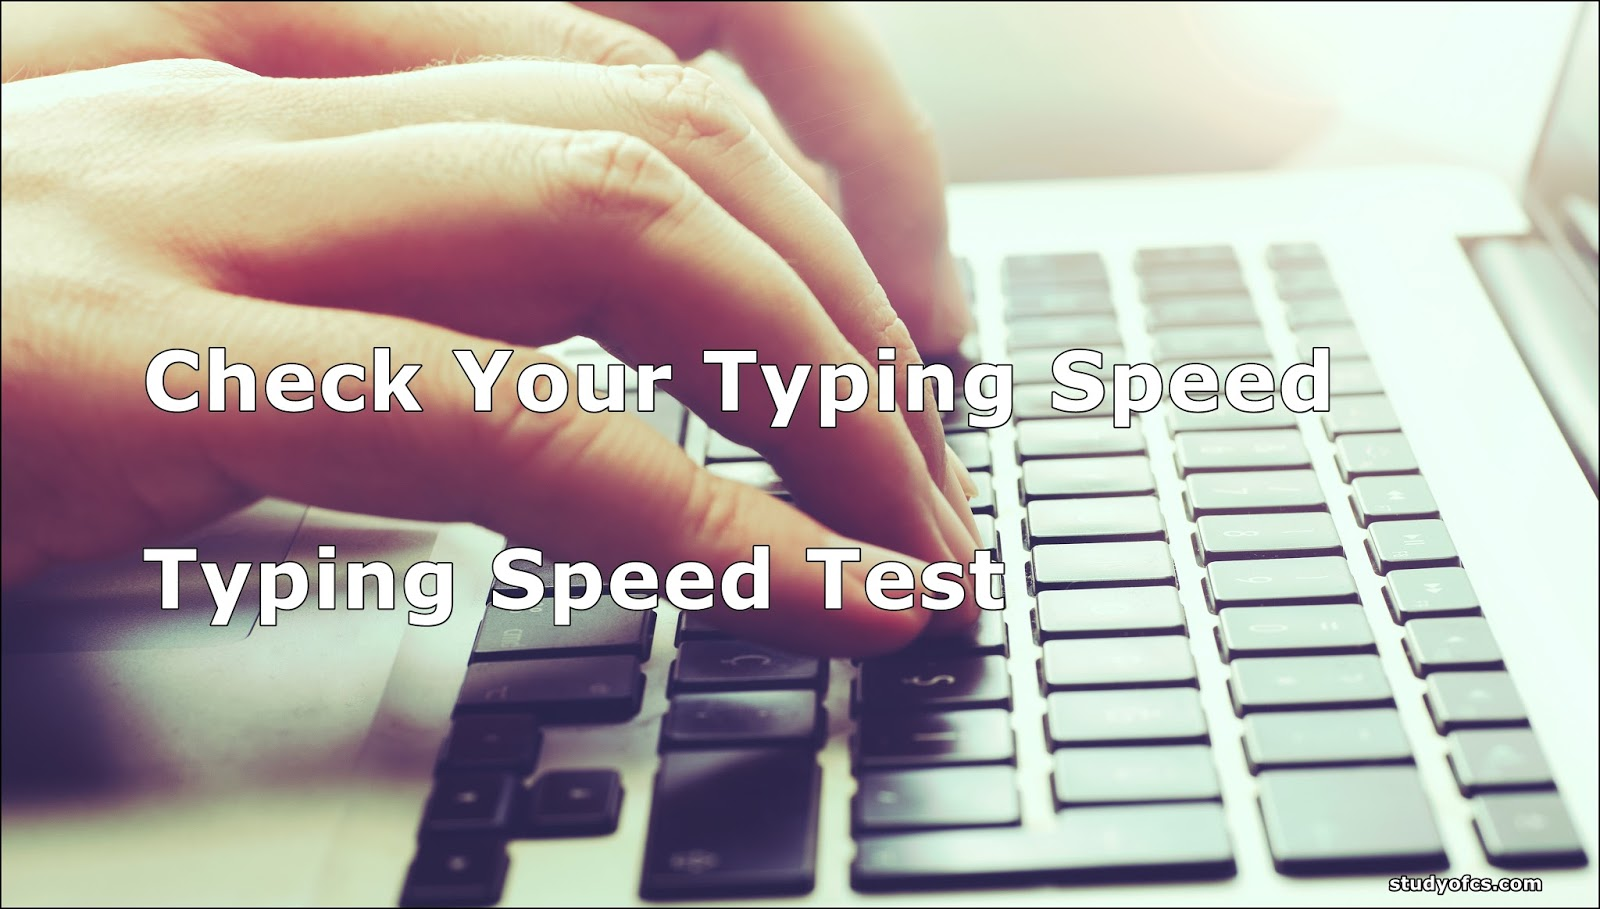 Typing finger, Eten fast fingers, Advanced 10 fast fingers, How to create a typing test website, Finger fast typing test, Advanced typing test, Faster typing, Typing test british,